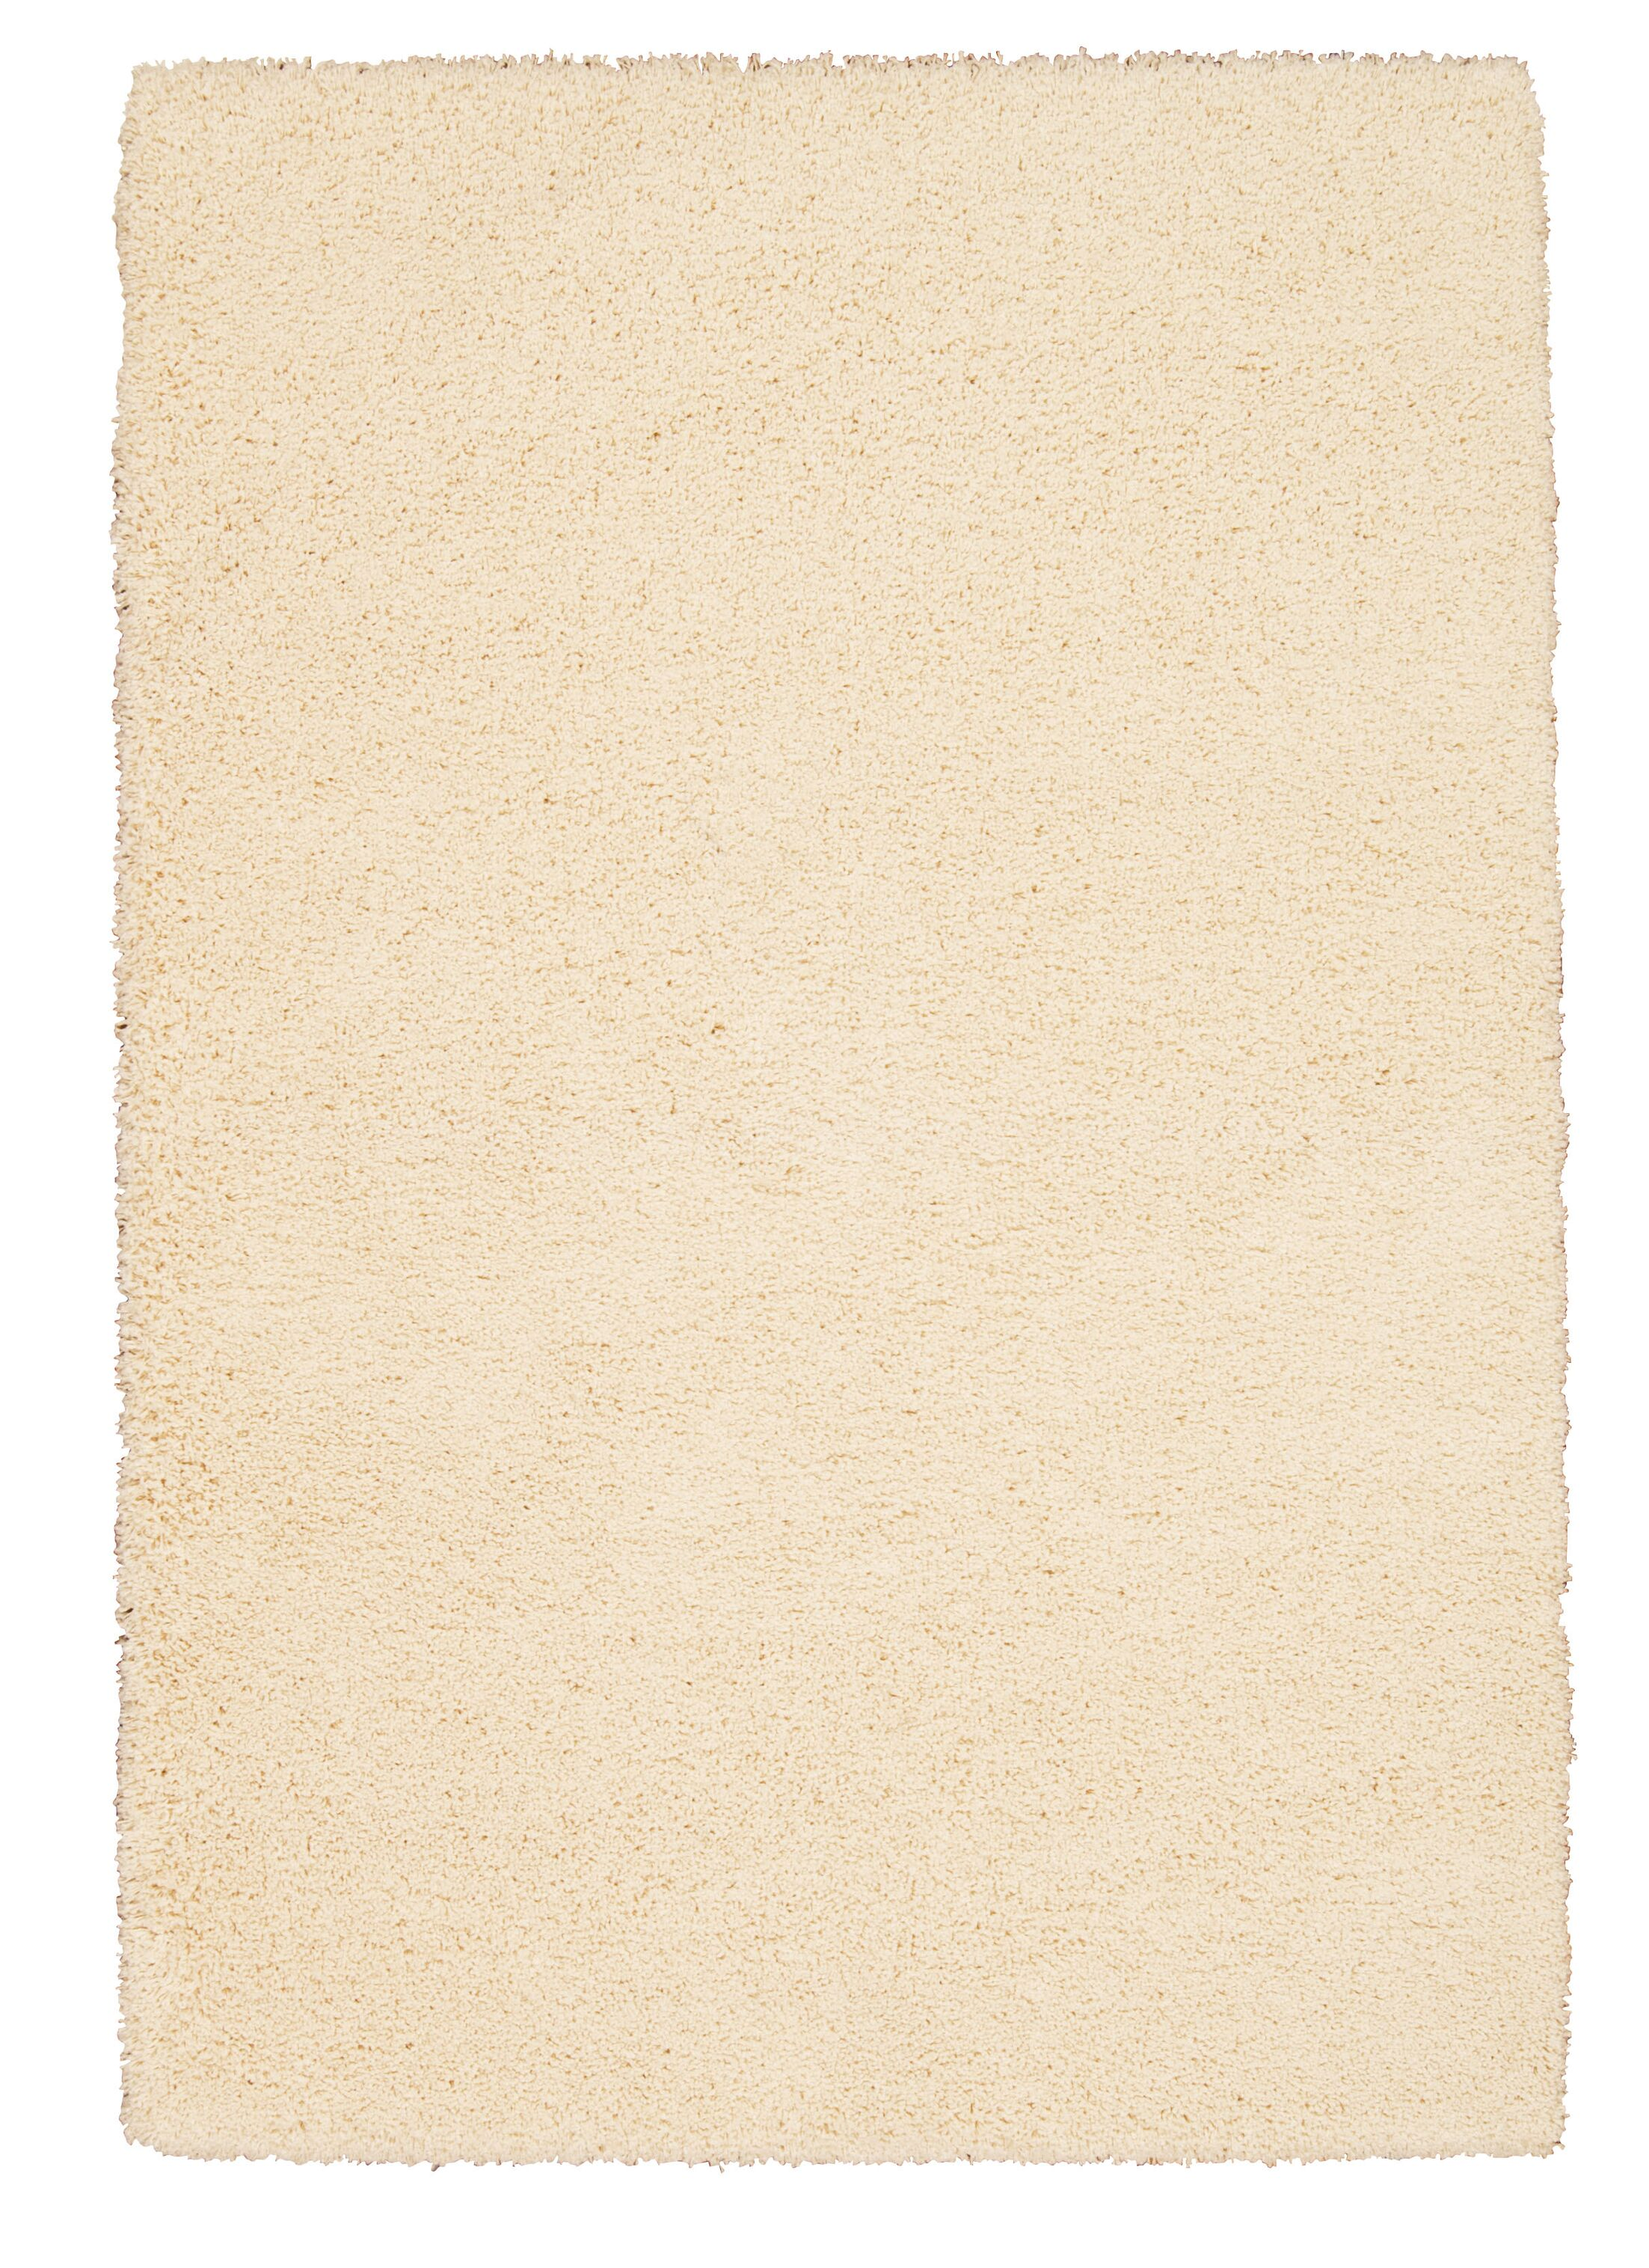 Shelley Cream Area Rug Rug Size: Rectangle 7'10